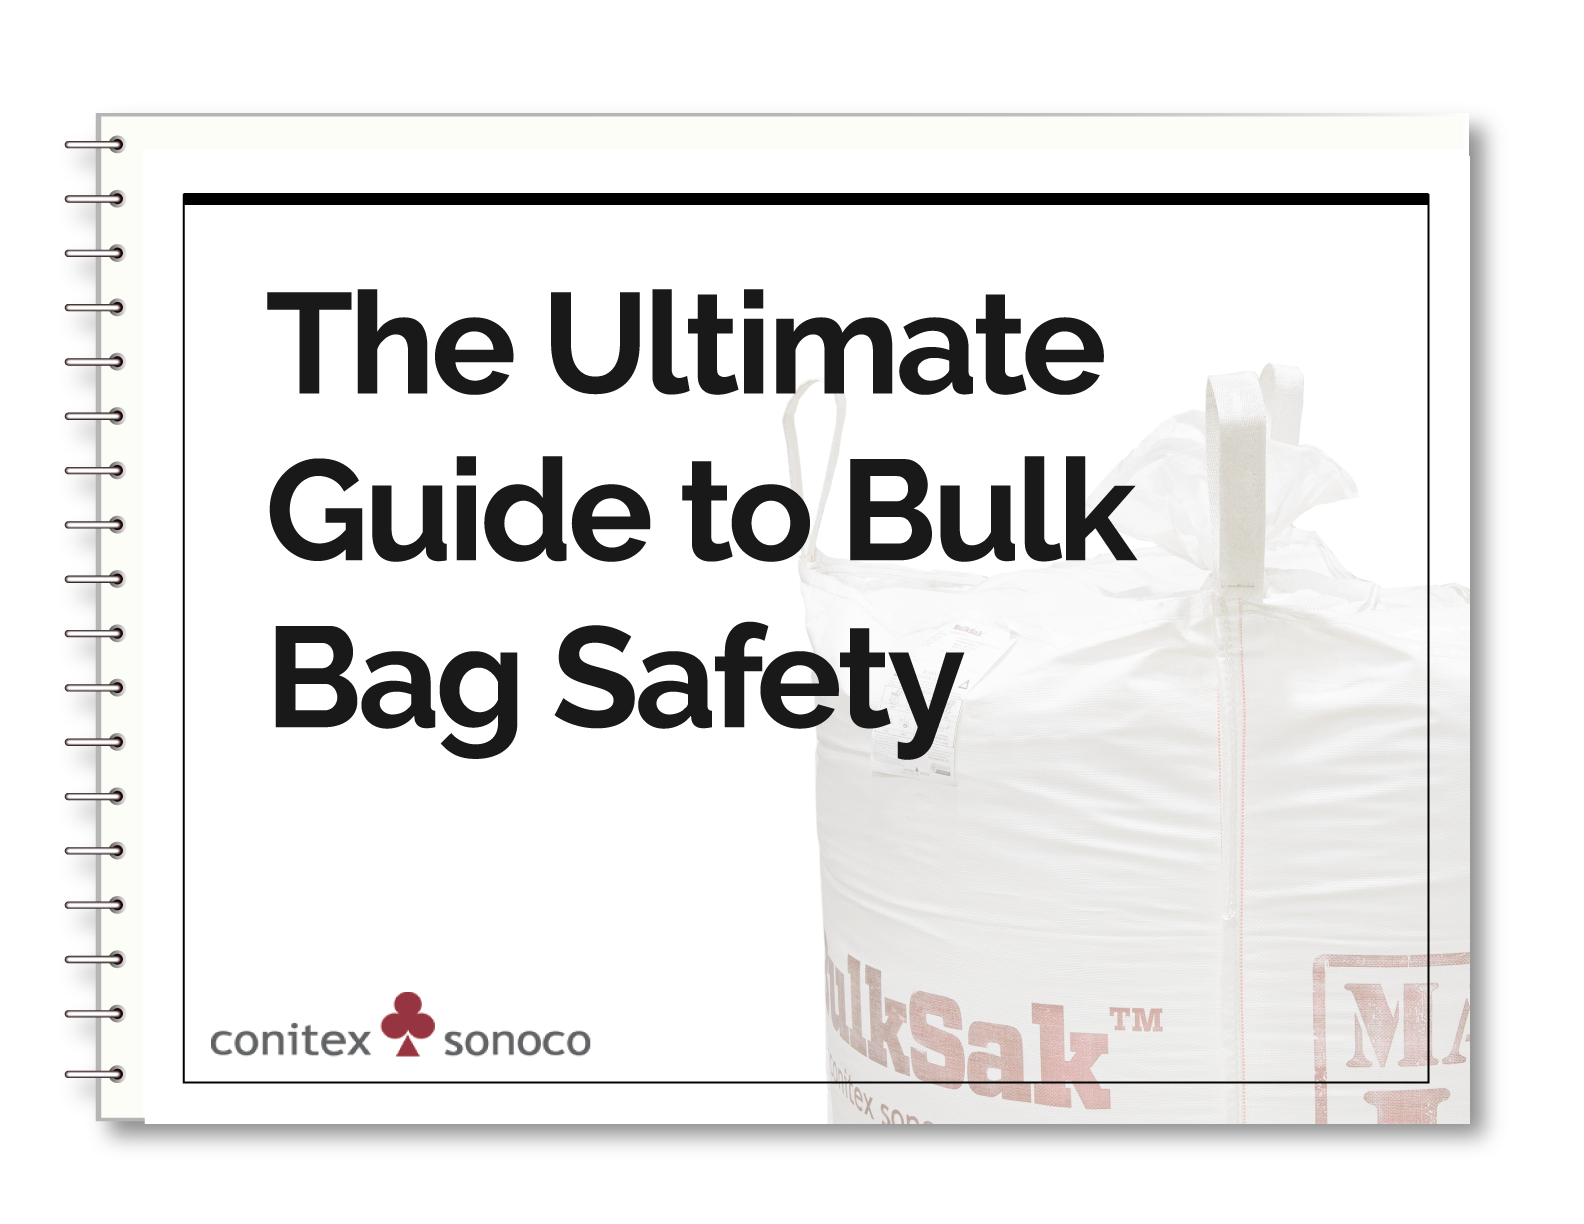 The-Ultimate-Guide-to-Bulk-Bag-Safety-COVER